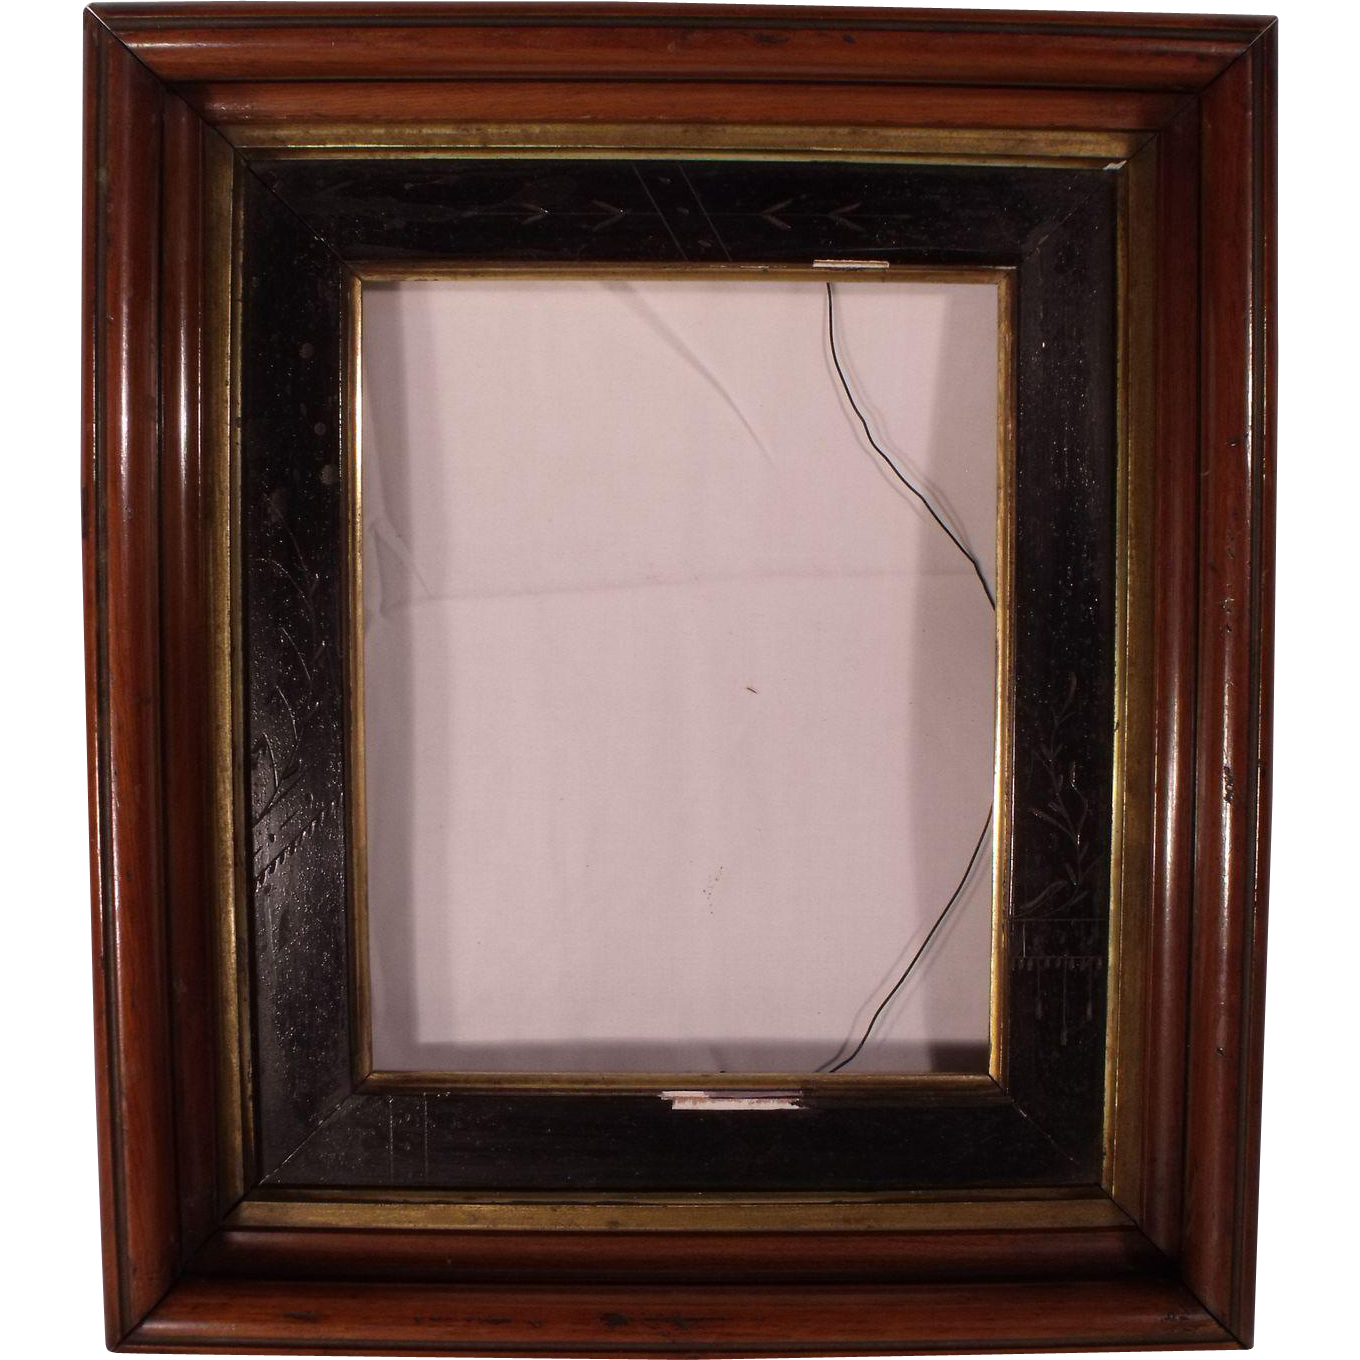 Antique victorian deep shadow box picture frame with carved panel antique victorian deep shadow box picture frame with carved panel jeuxipadfo Image collections